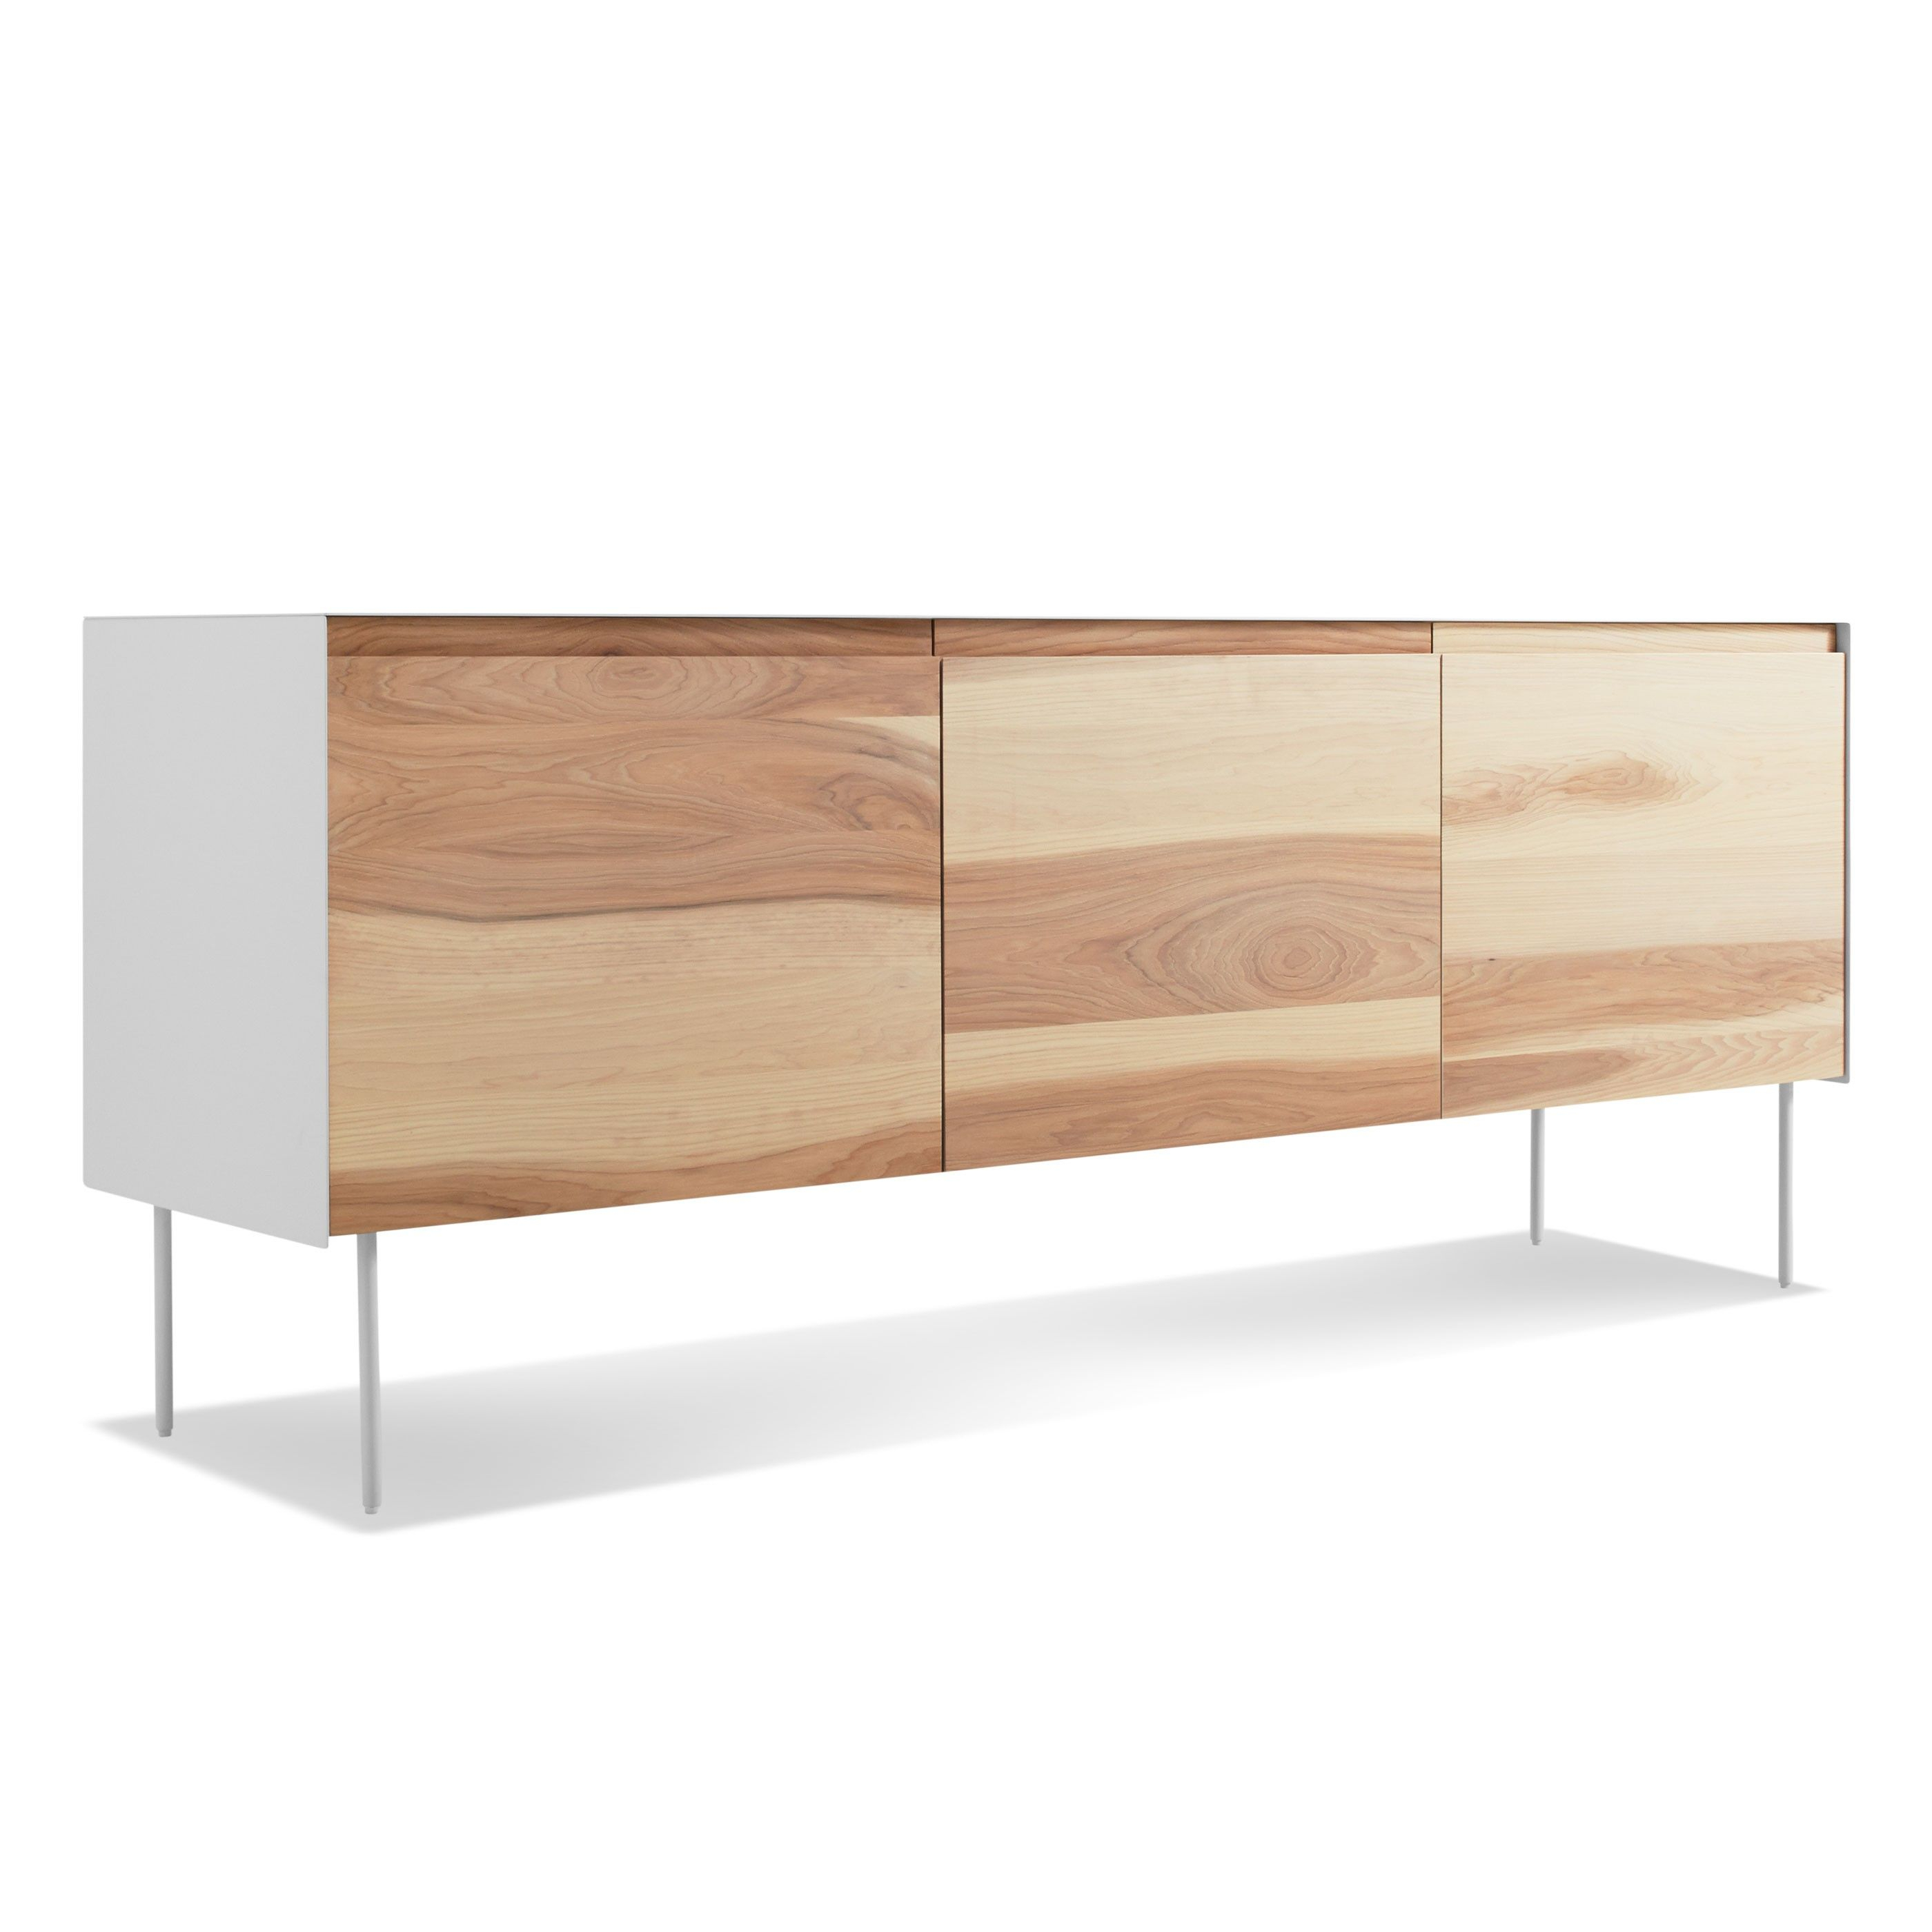 Clad 3 Door Credenza, Hickory / White | Rao | Credenza With Stephen Credenzas (View 6 of 30)